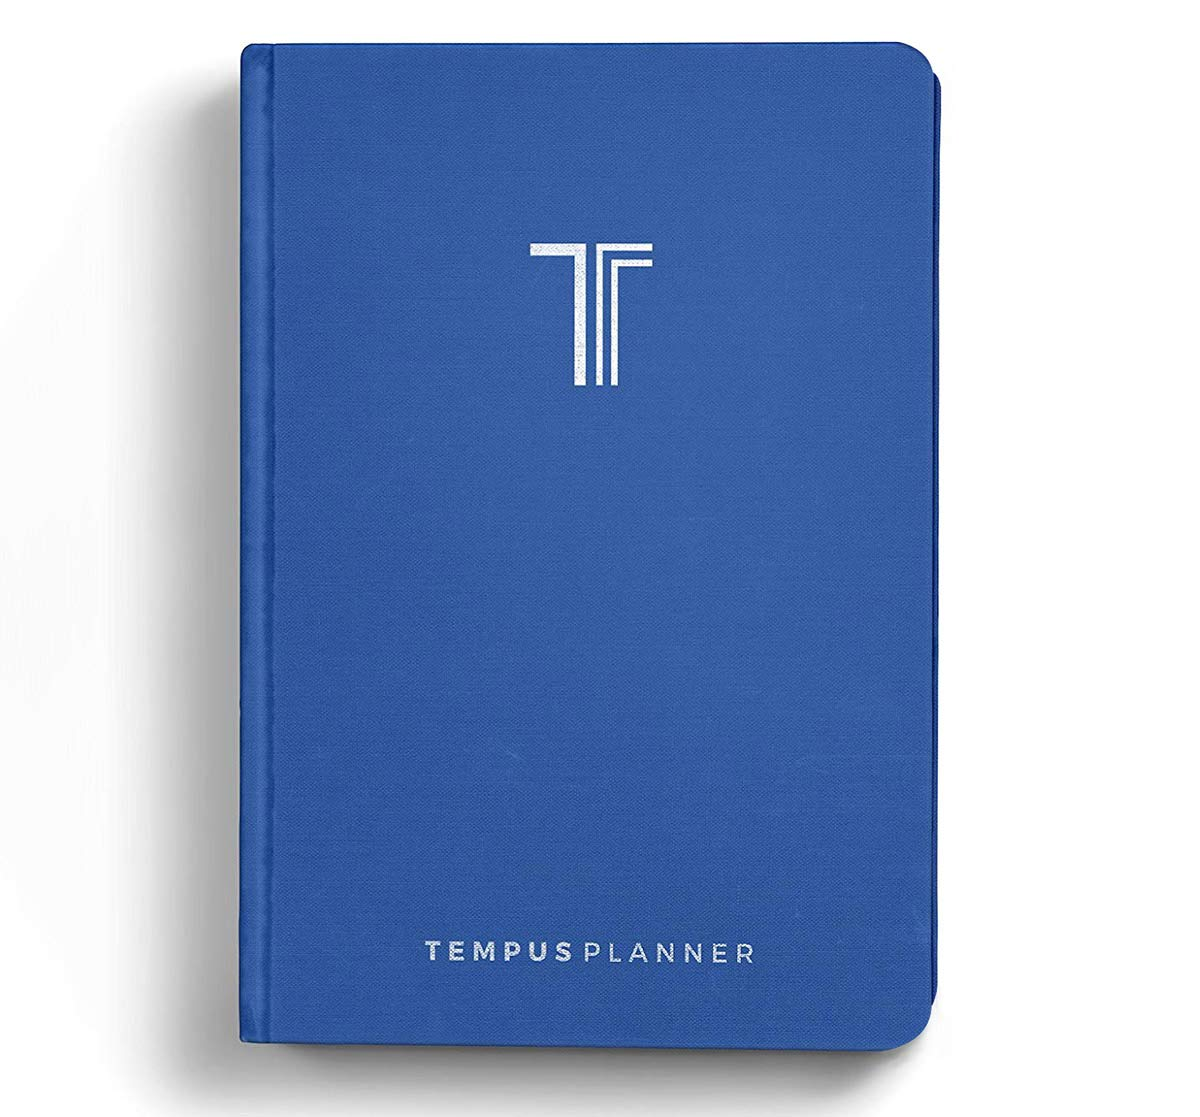 The Tempus Planner - Best Productivity Planner & Goal Journal travel product recommended by Lilia Derev on Pretty Progressive.